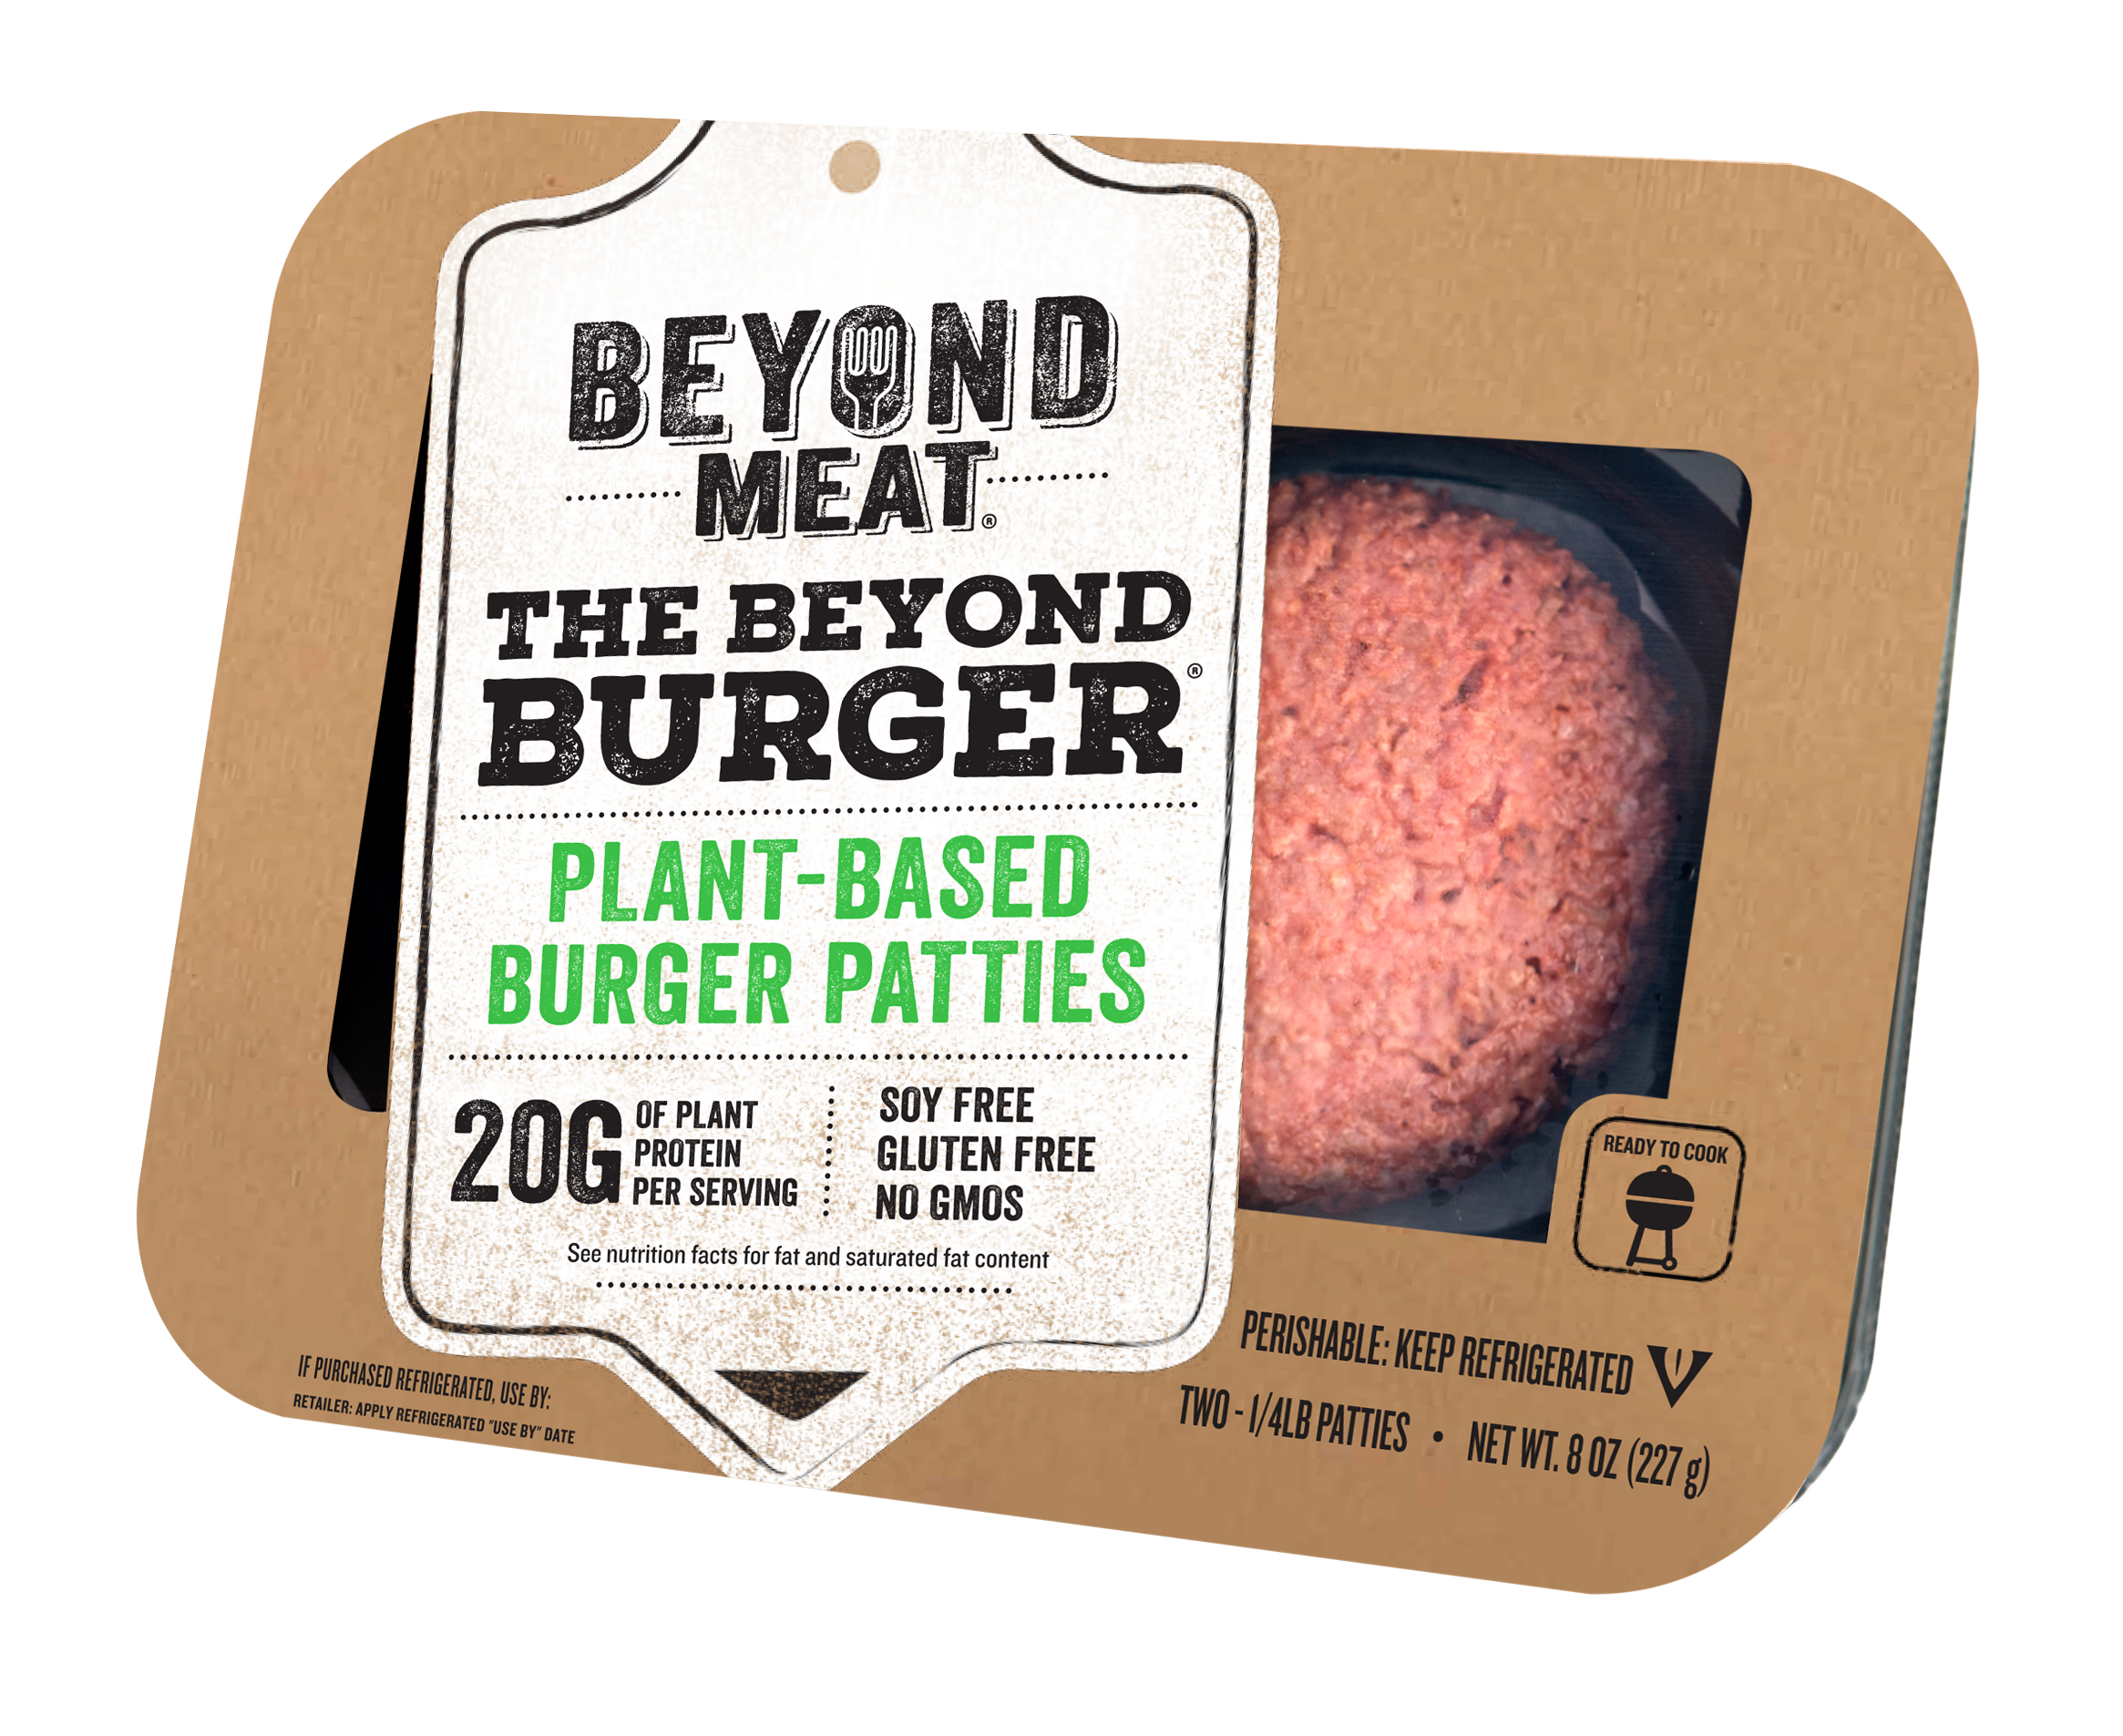 Beyond-Burger_Packaging-Photo_2018.png